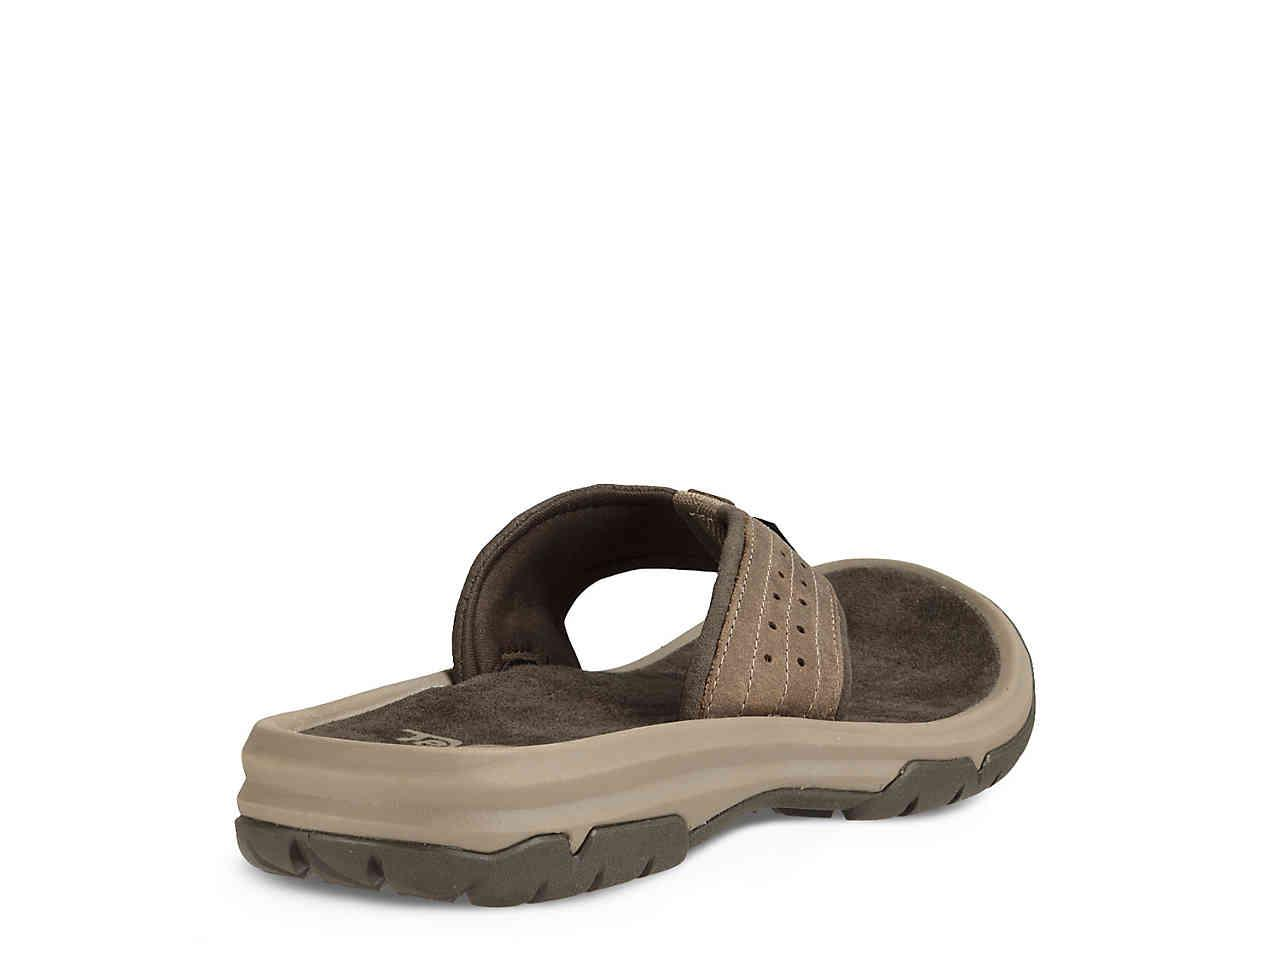 81f906cbedc7c Teva - Brown Langdon Sandal for Men - Lyst. View fullscreen